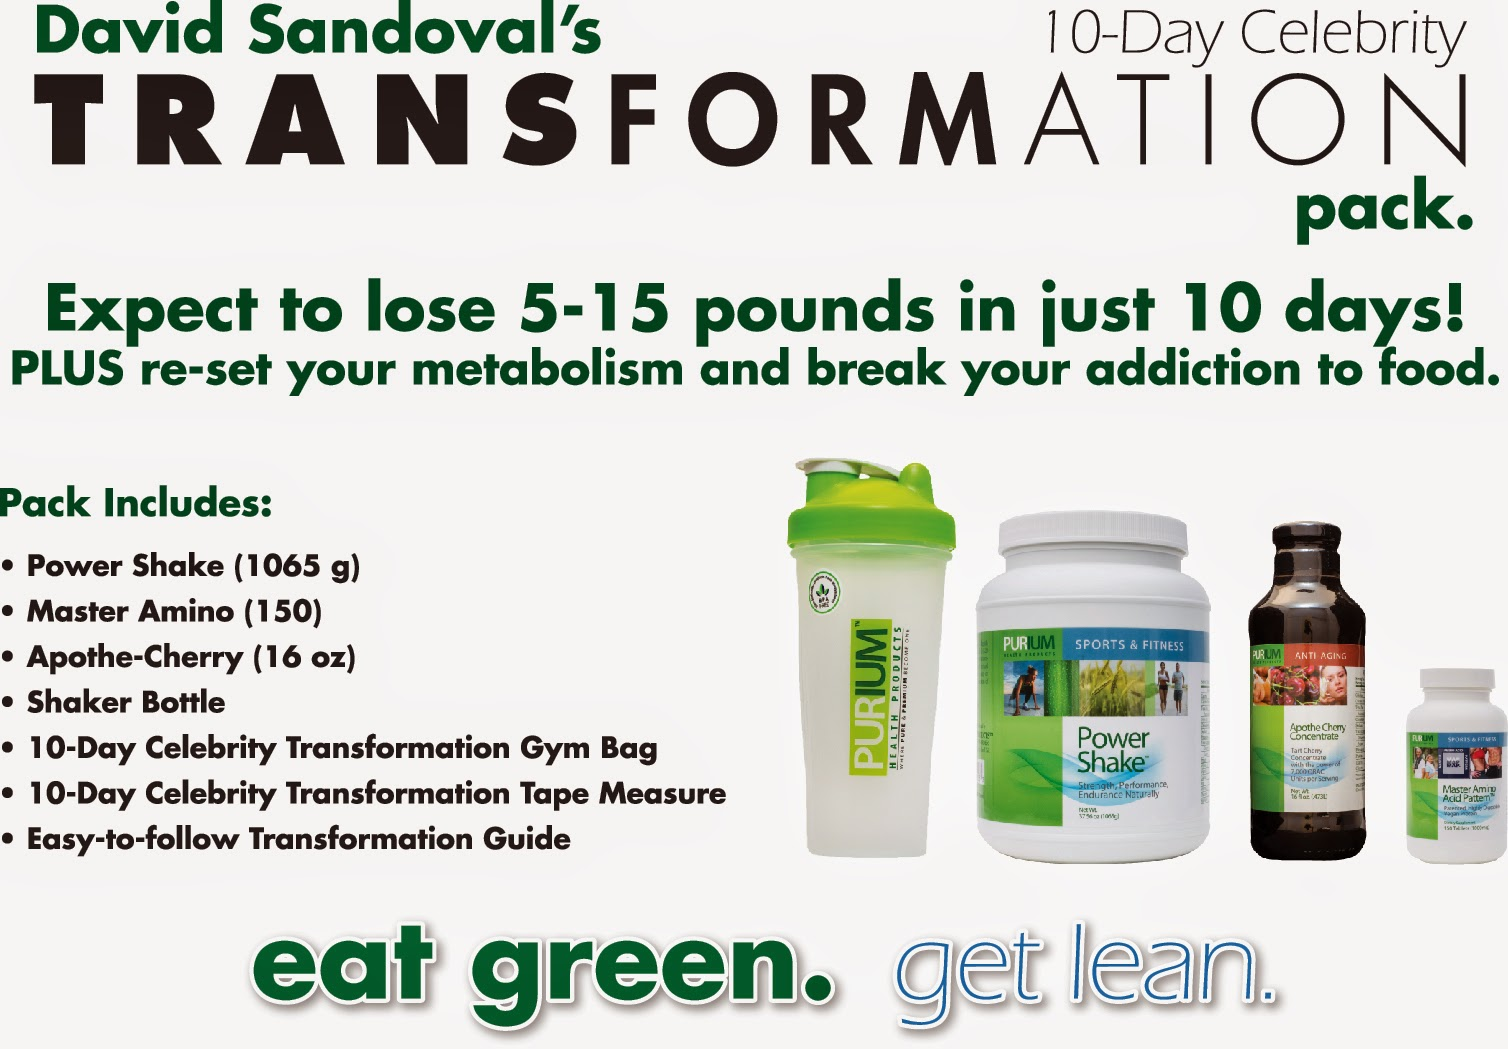 10-Day Transformation Pack